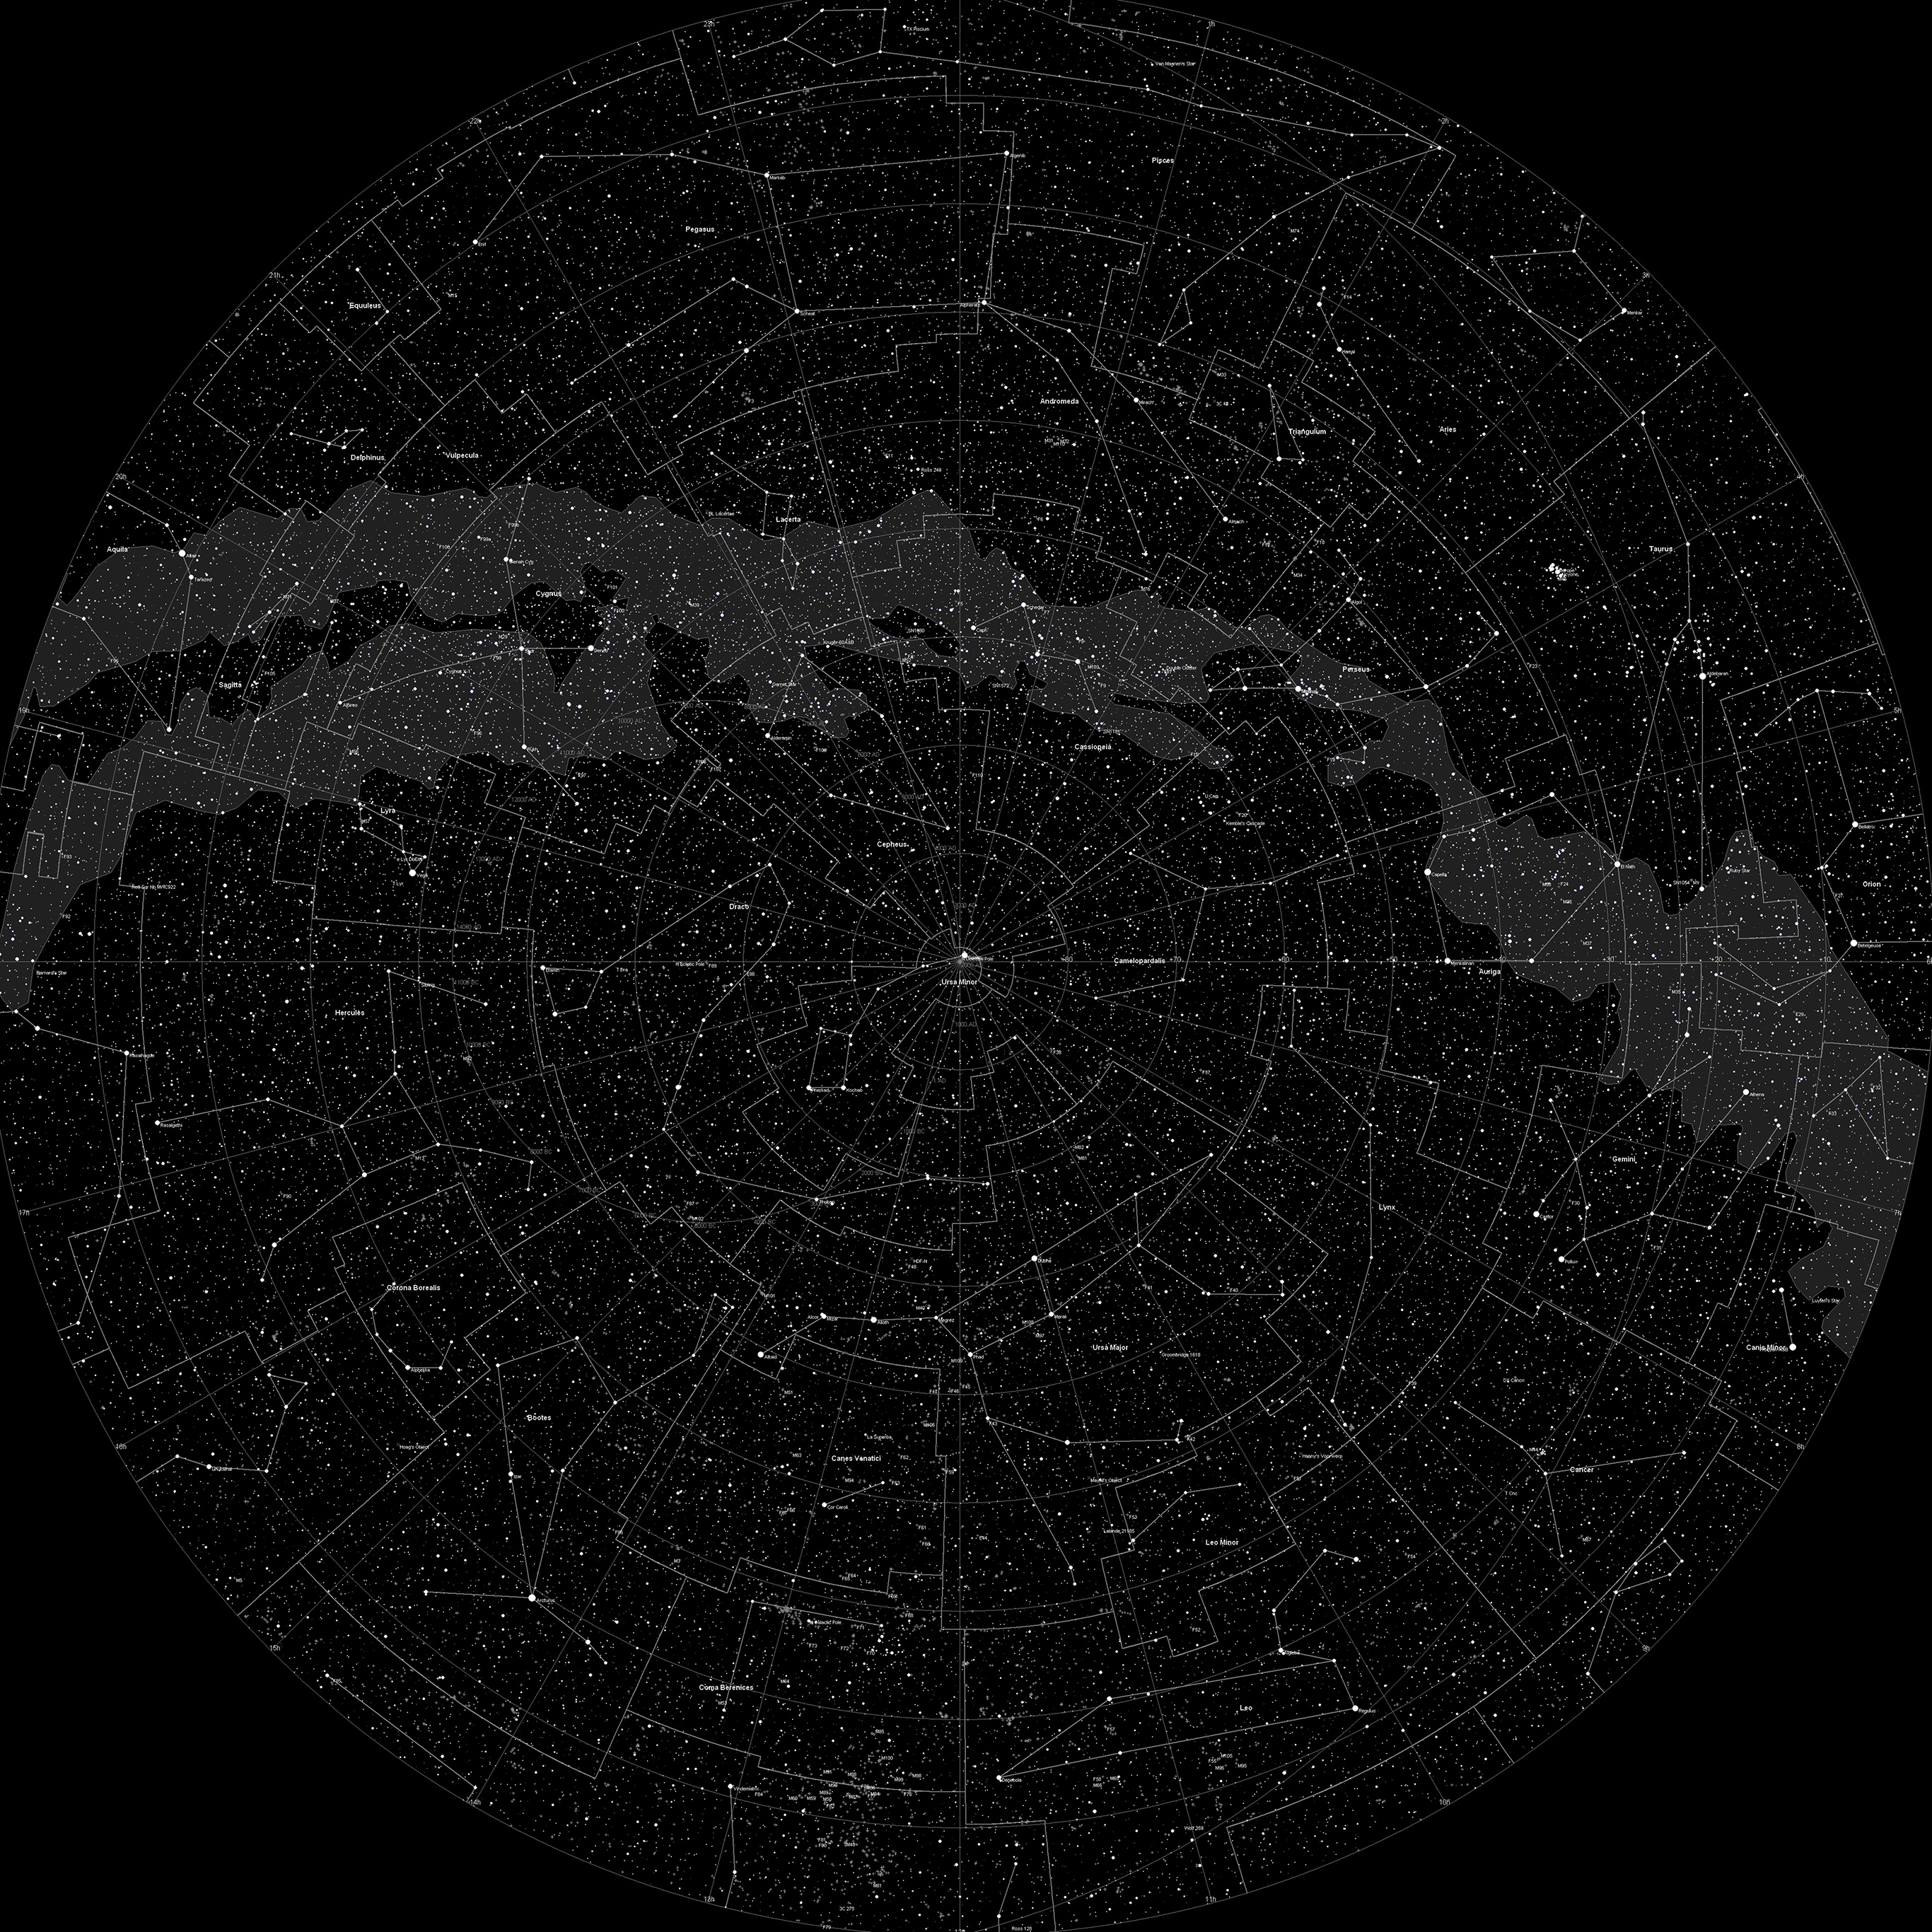 Star Map Android.Papers Co Android Wallpaper Vj04 Space Star Map Pattern Dark